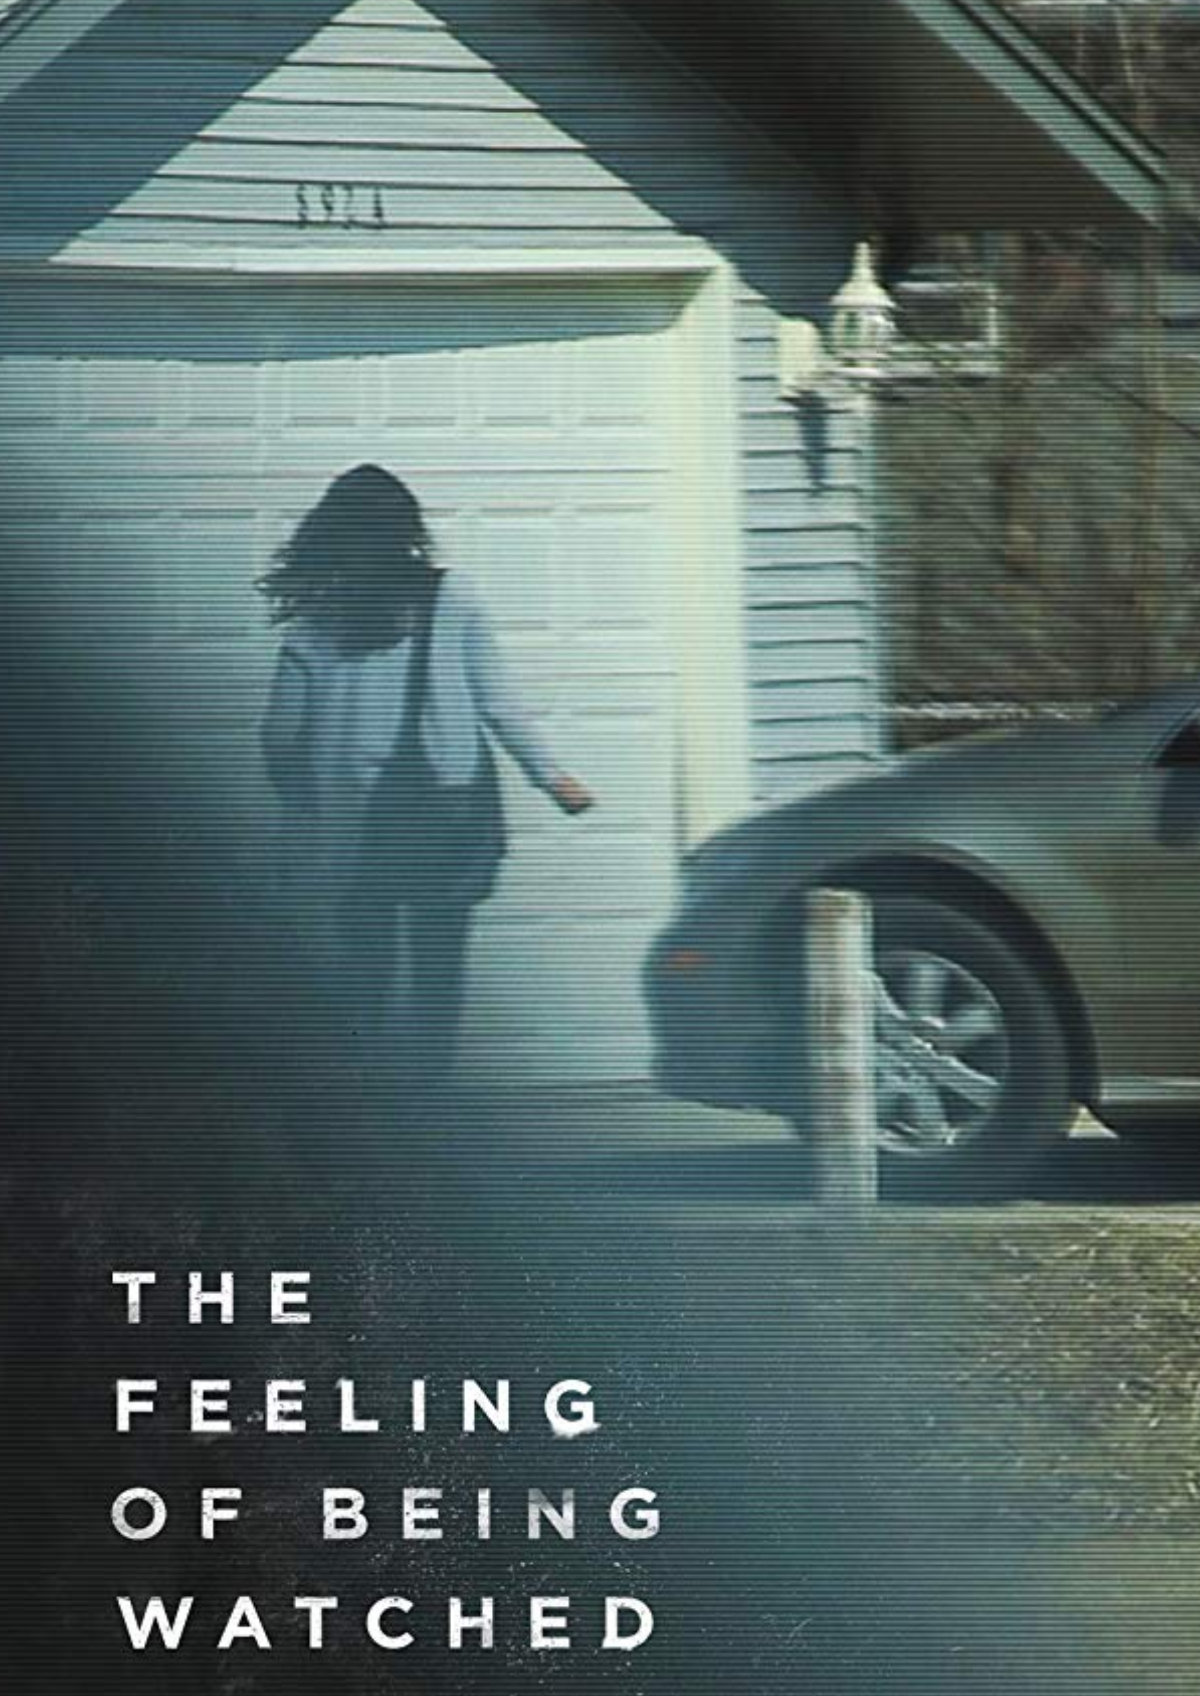 'The Feeling of Being Watched' movie poster